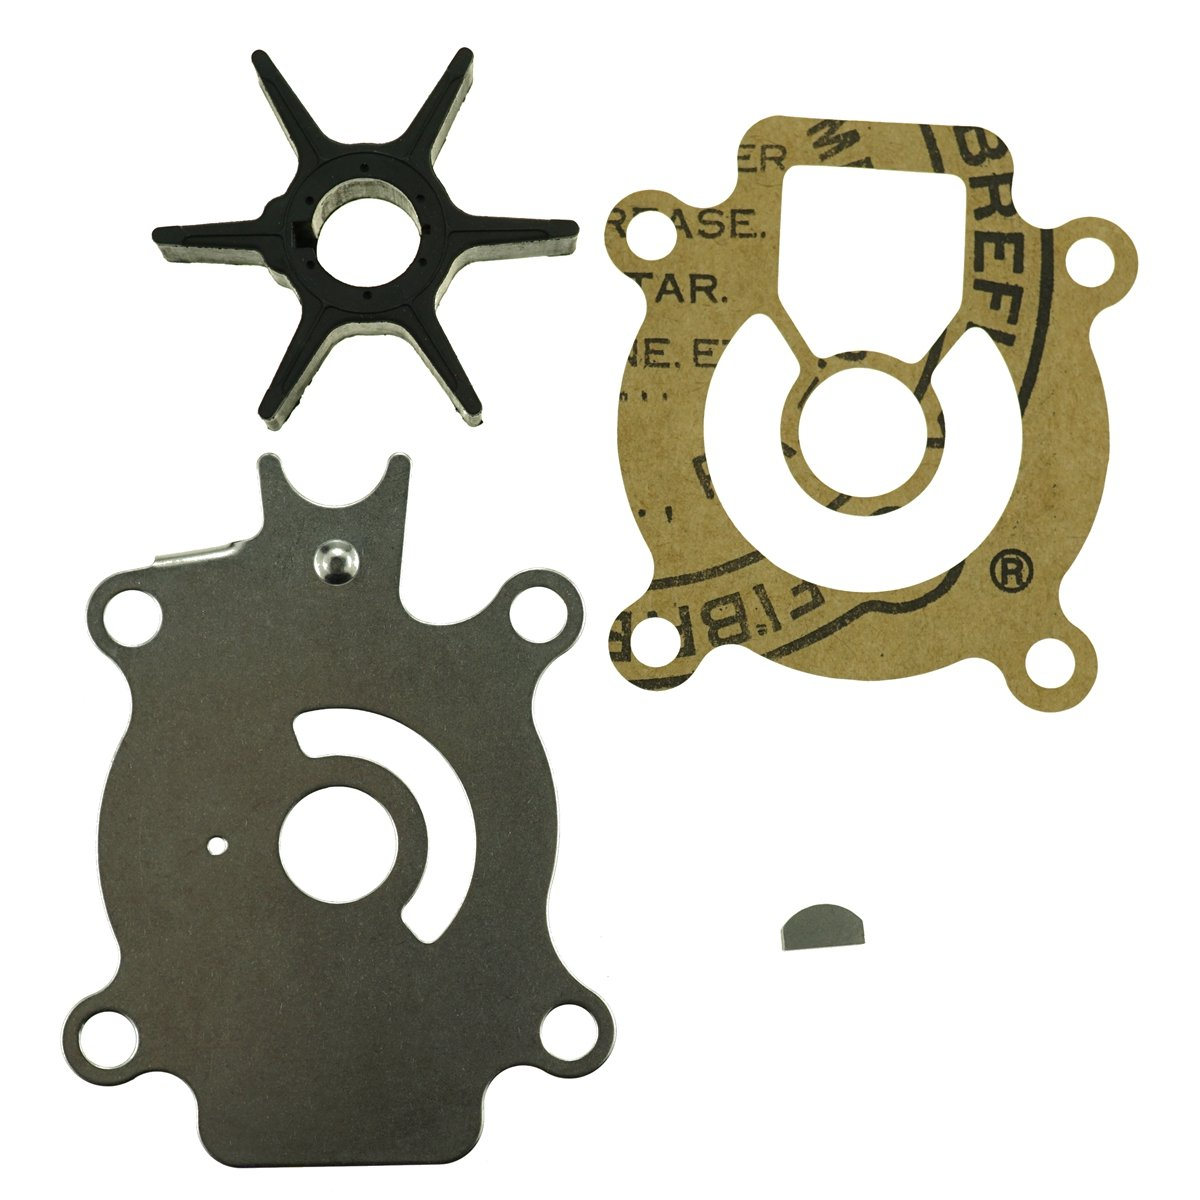 Amazon.com: New Water Pump Impeller Service Kit for Suzuki DT75 DT85  17400-95351 18-3244: Sports & Outdoors